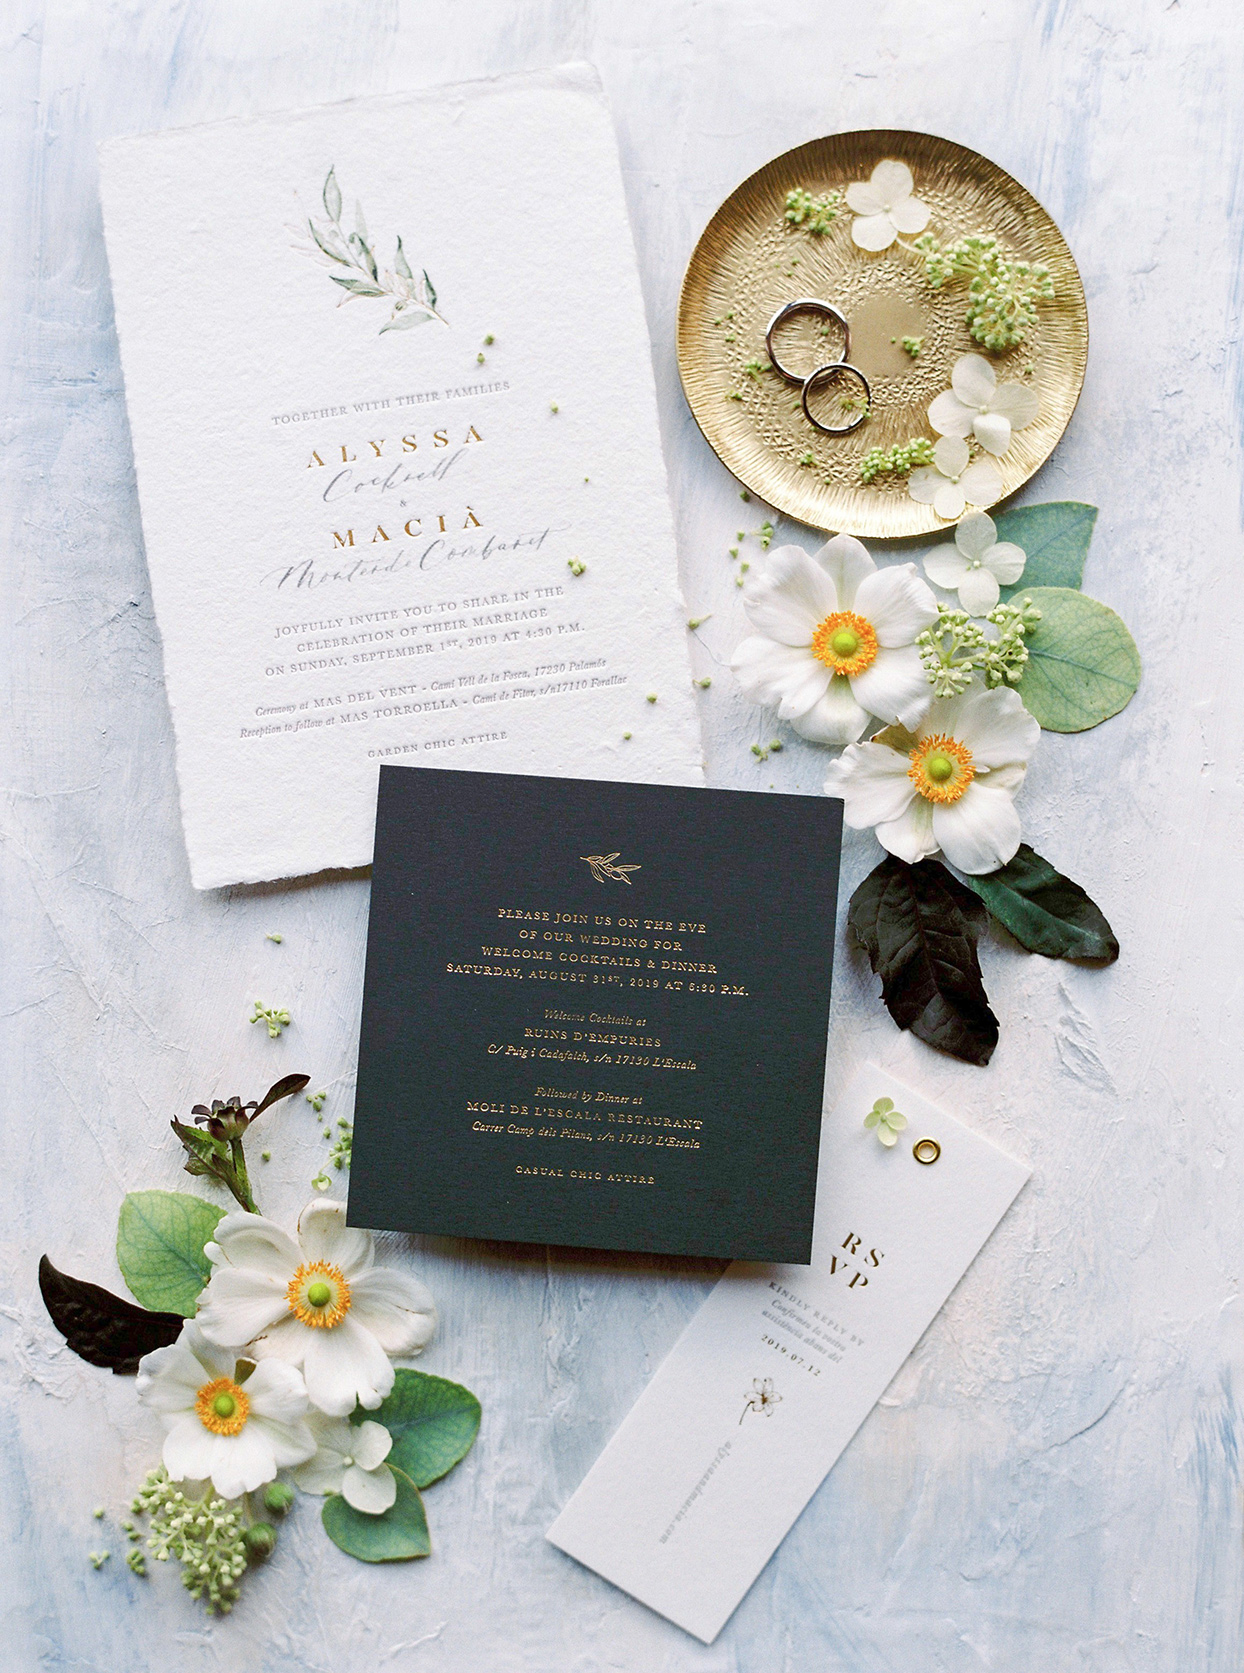 alyssa macia wedding rustic invites with flowers